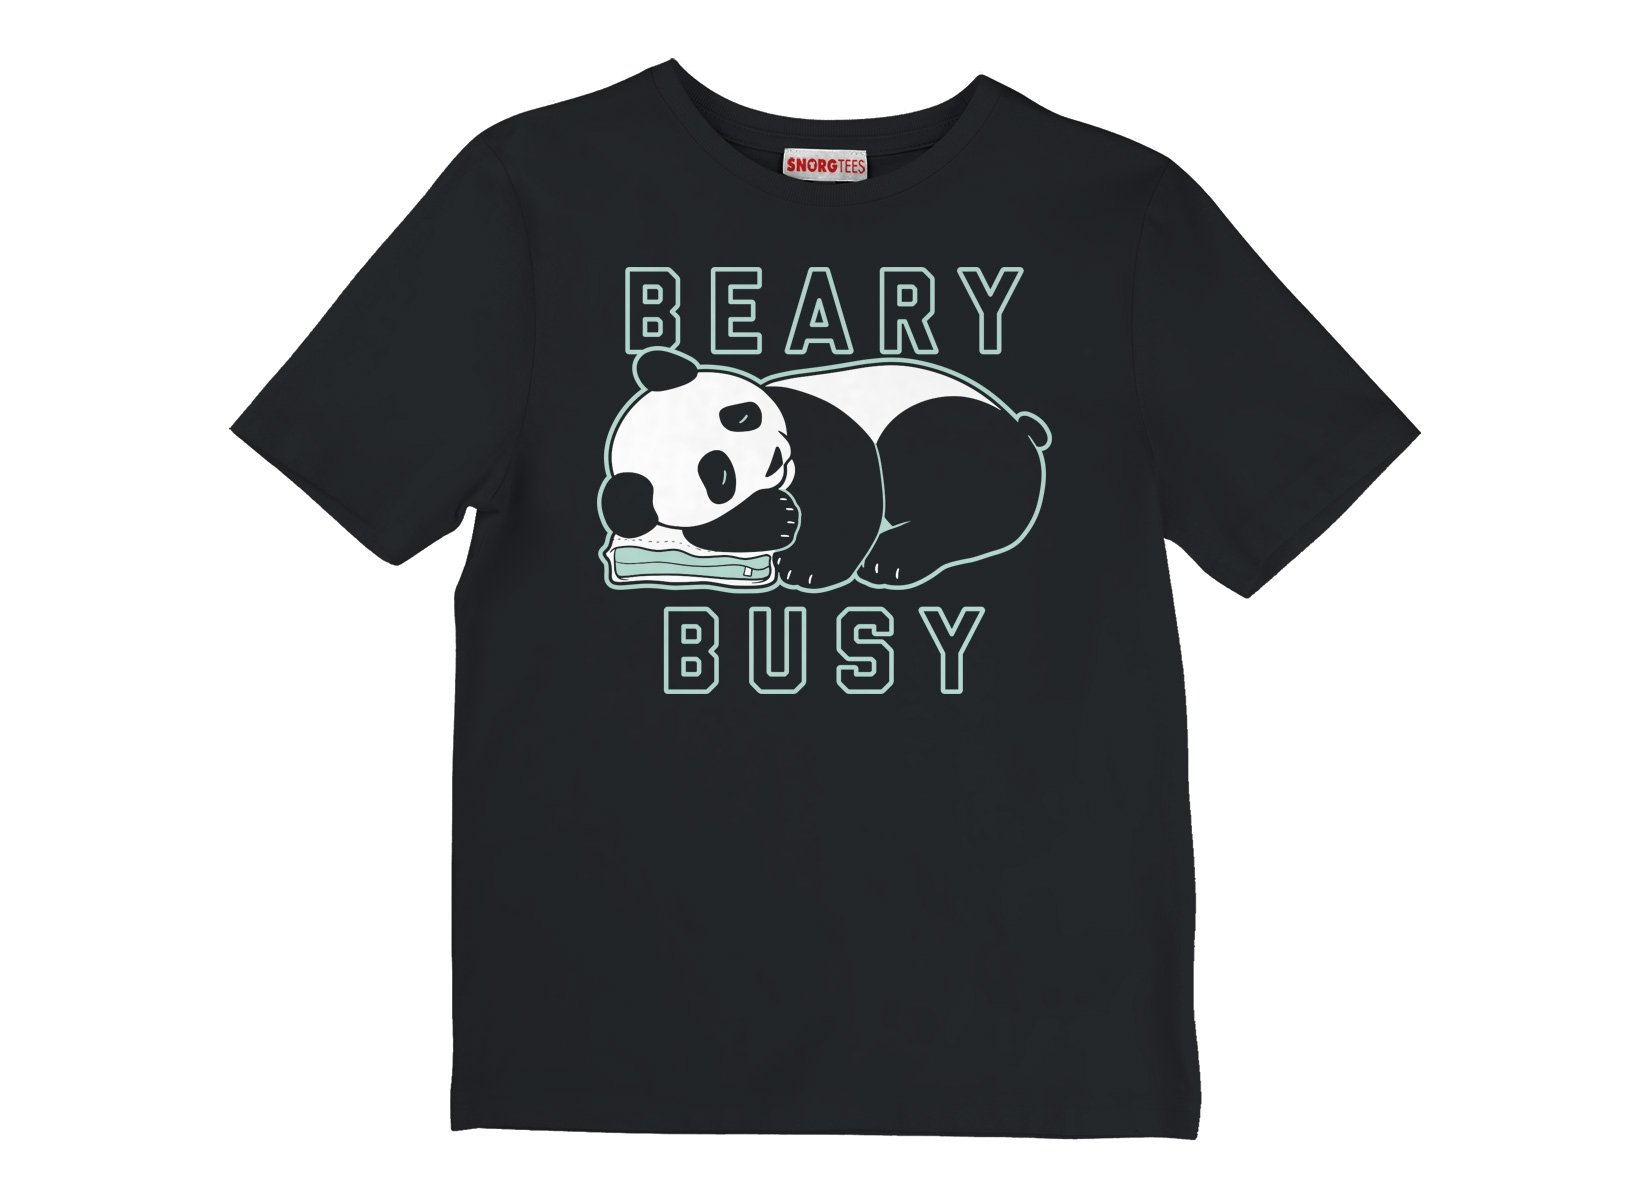 Beary Busy on Kids T-Shirt